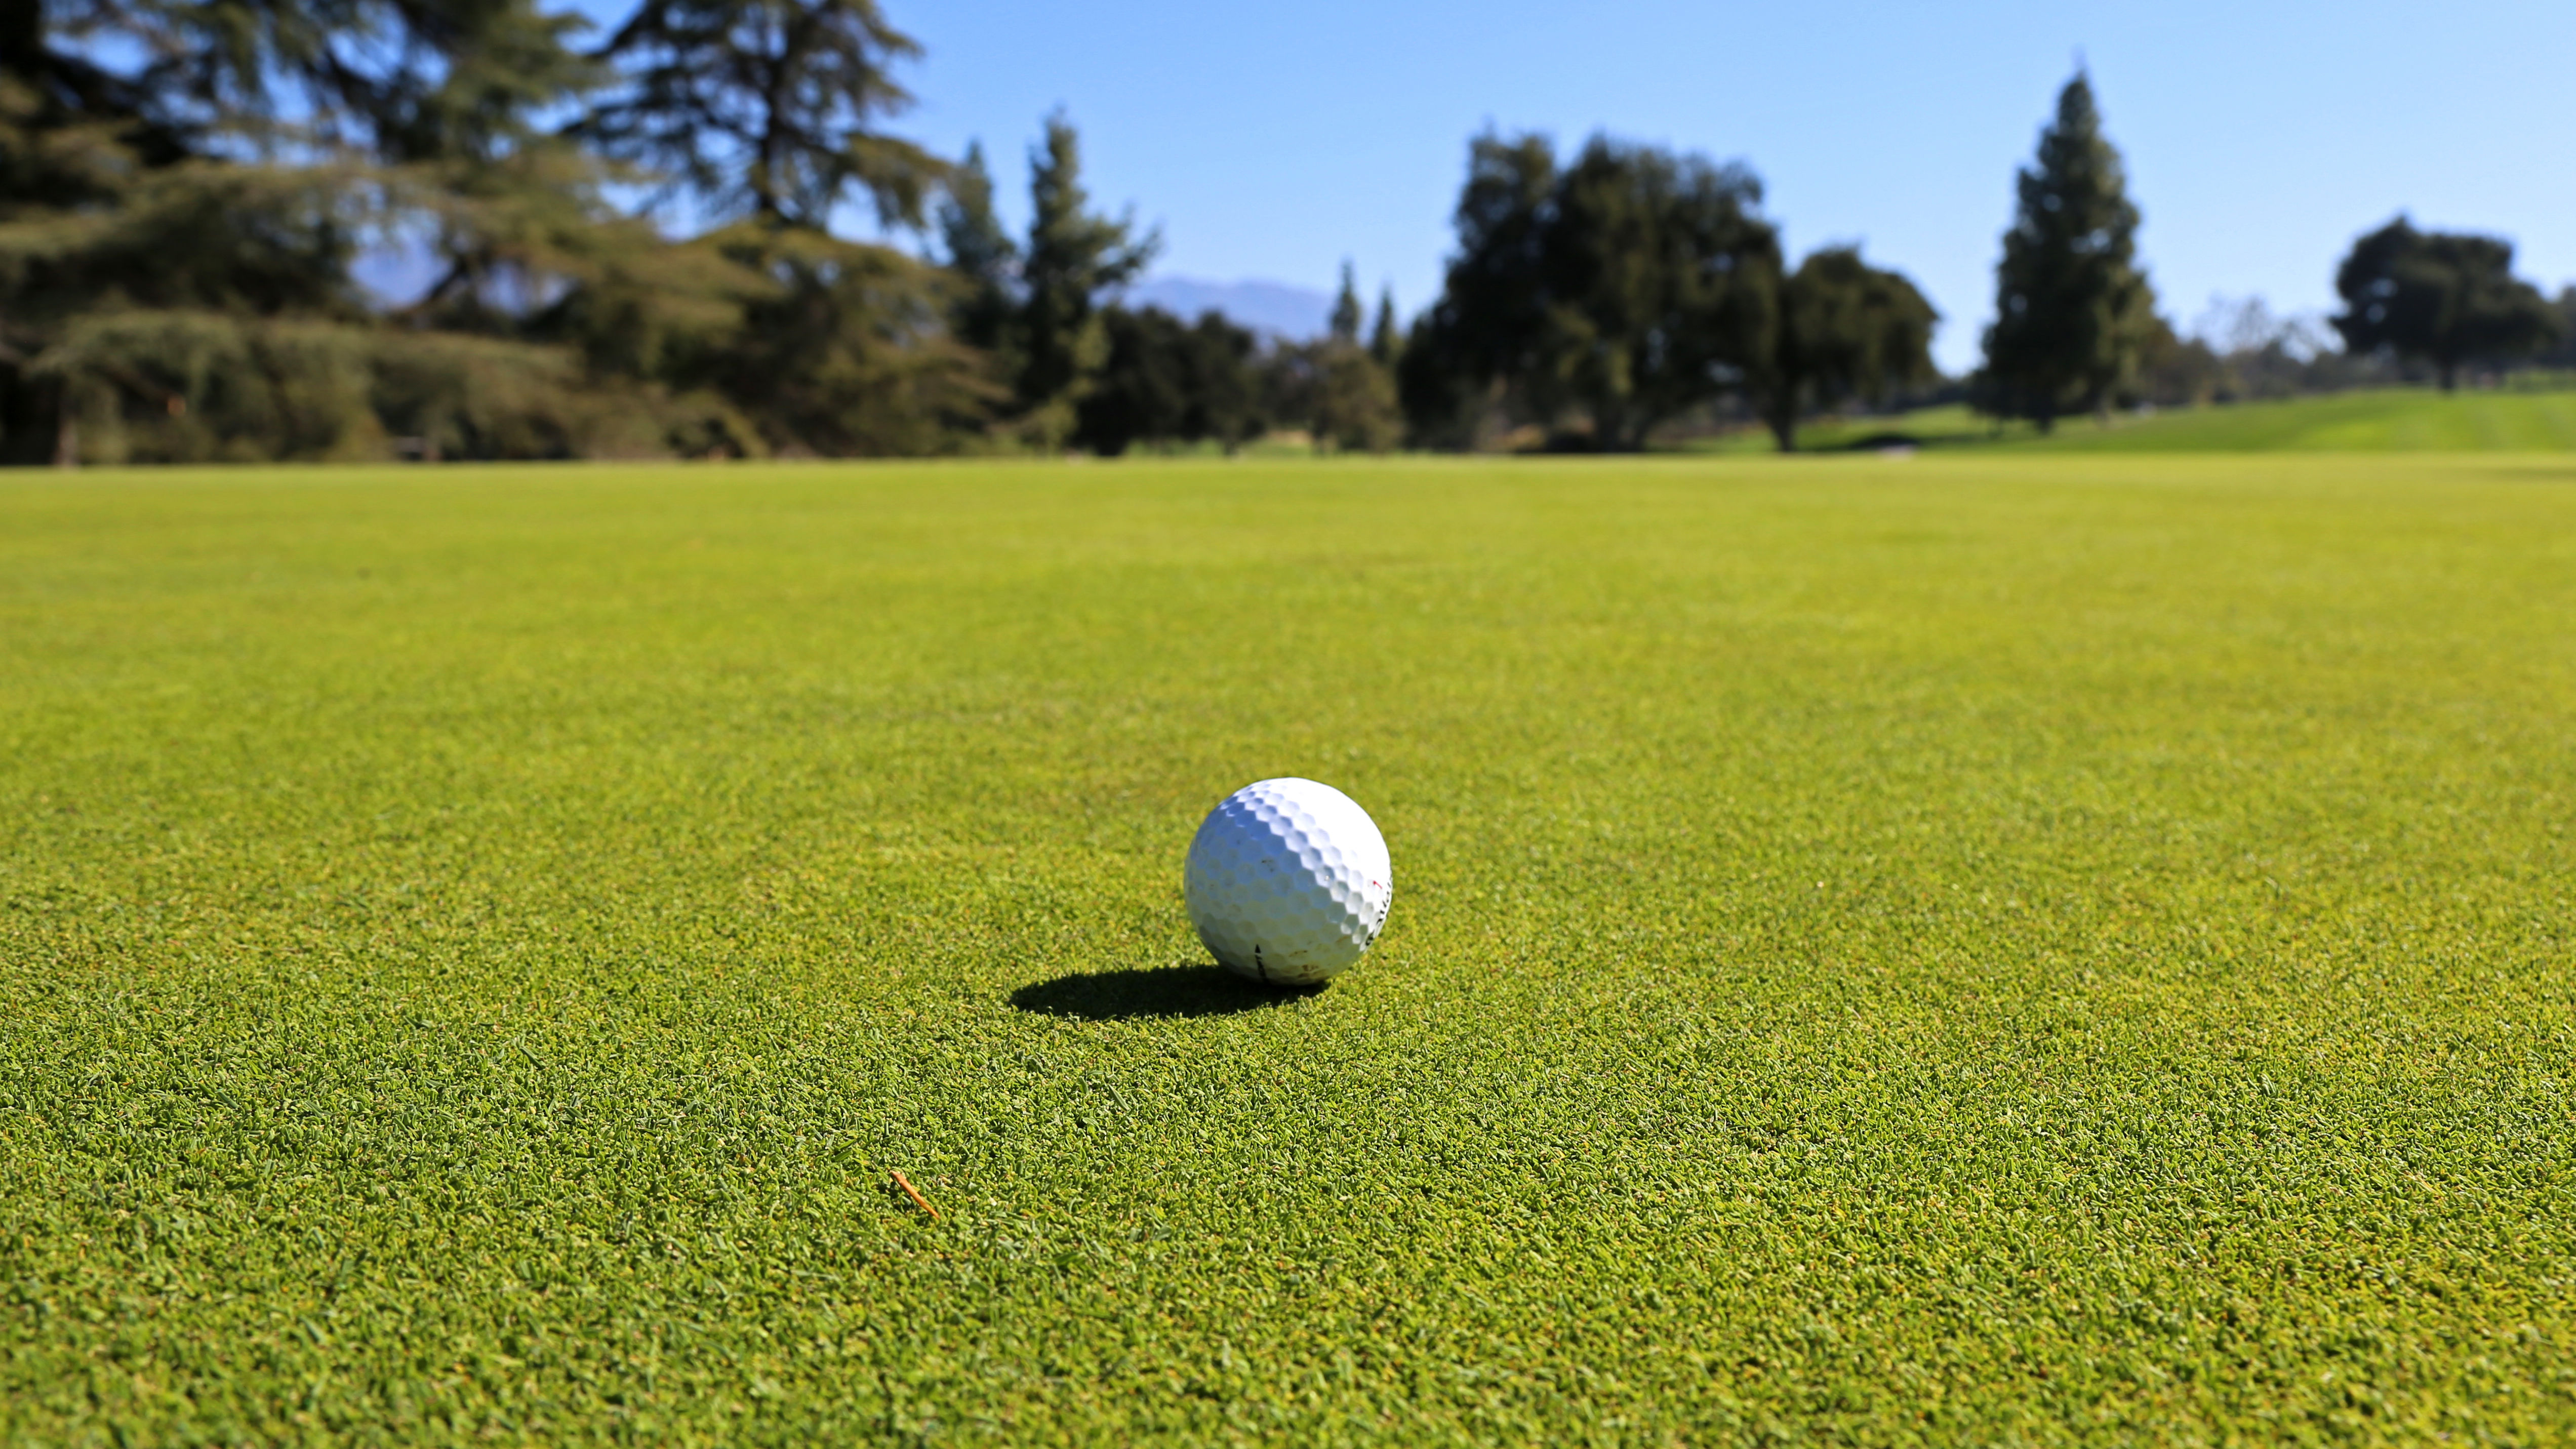 The Ins and Outs of Managing Poa Annua Putting Greens